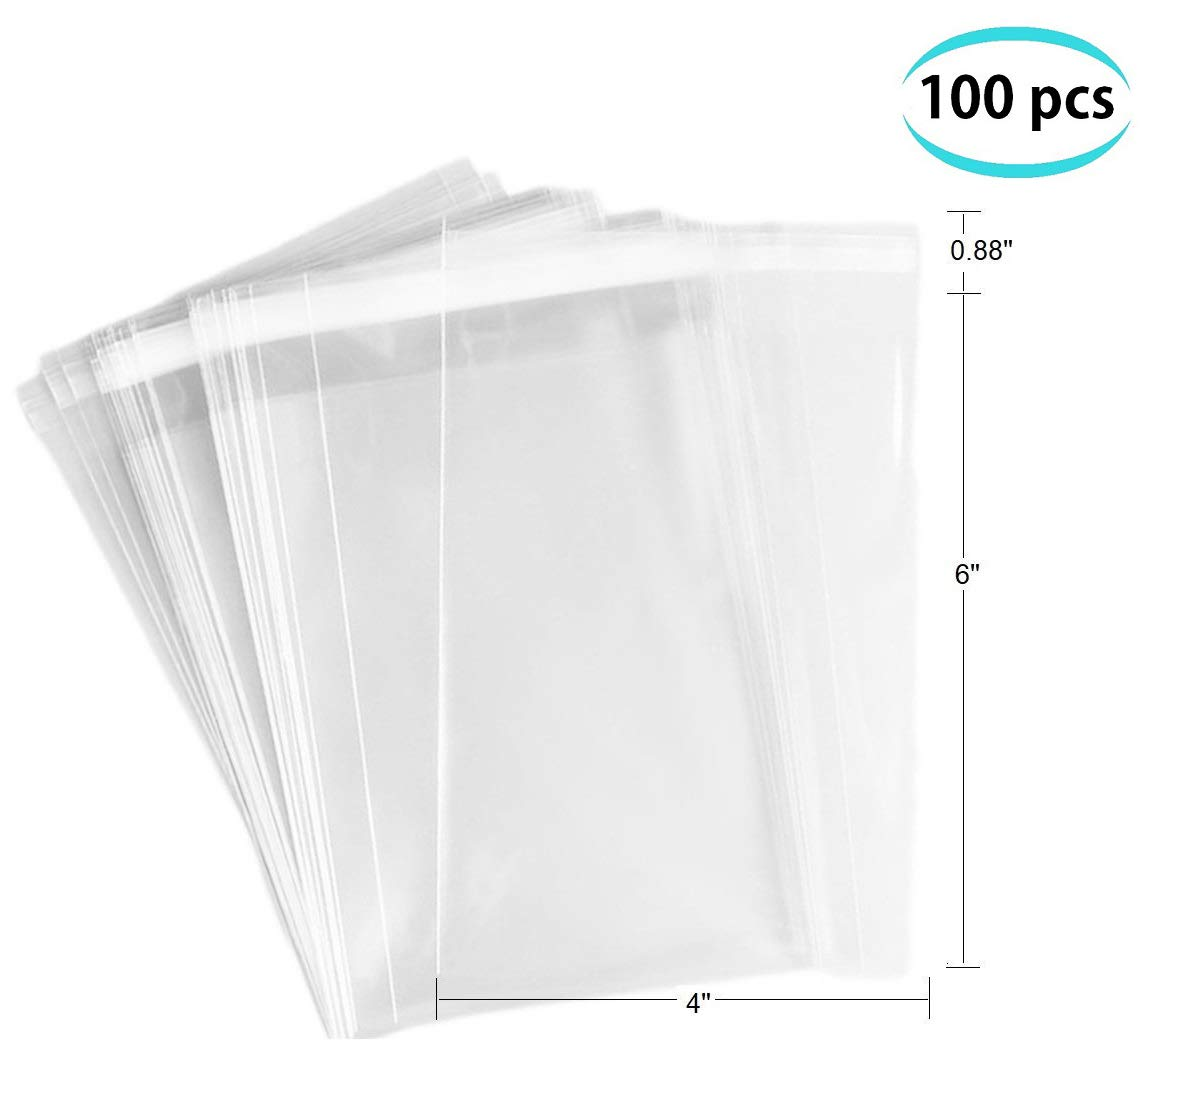 FlanicaUSA 100 pcs Clear Flat Resealable Cello/ Cellophane Bags Good for Bakery, Candle, Soap, Cookie,jewelry items bags. (3